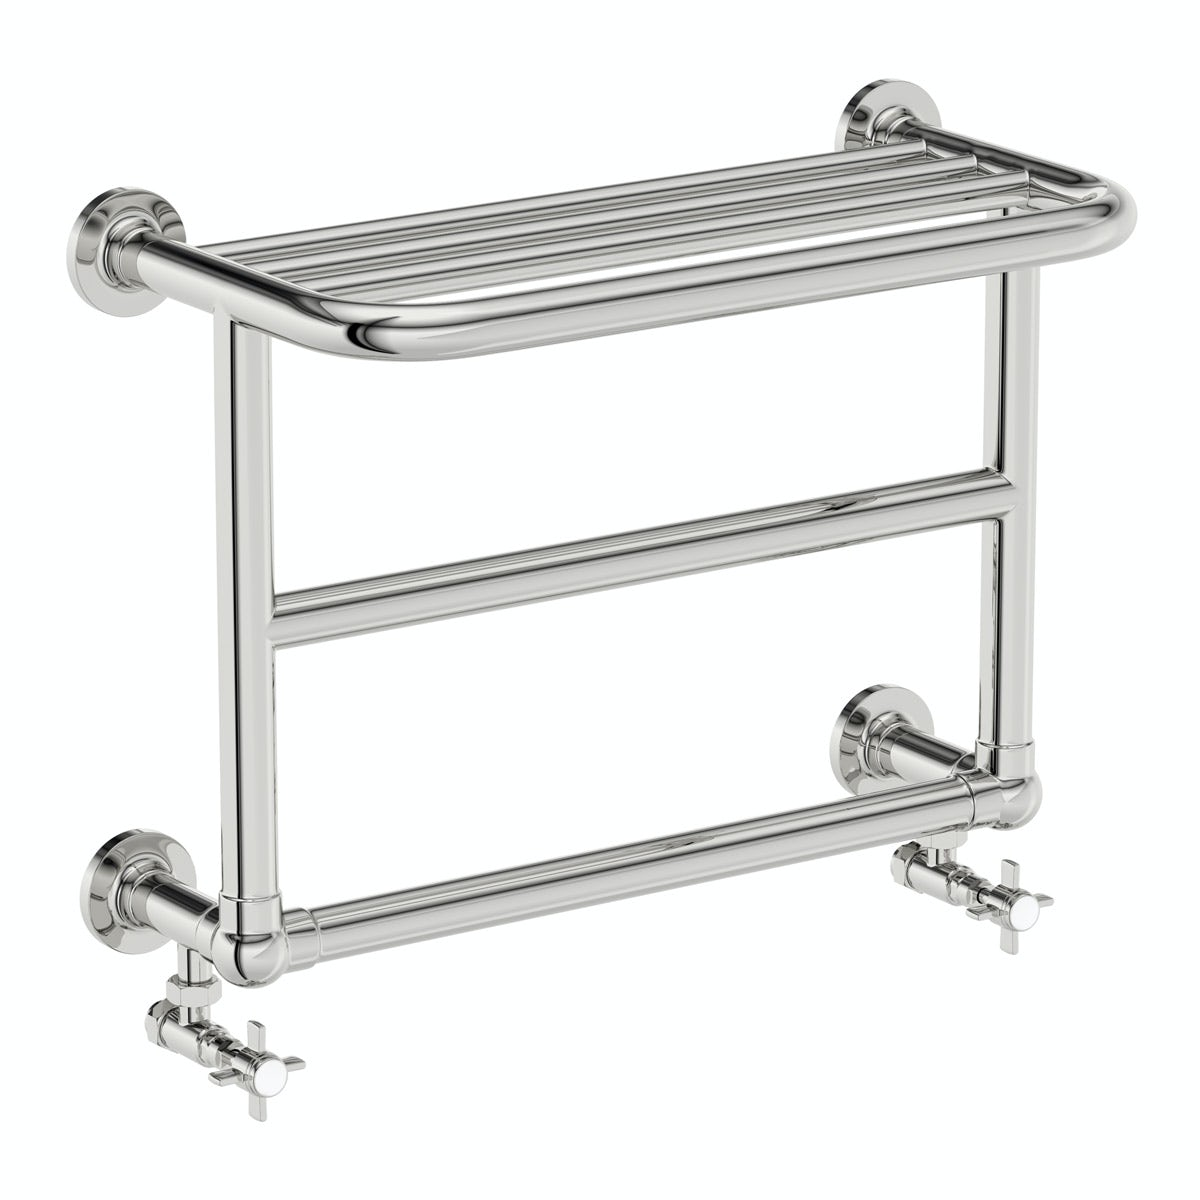 The Bath Co. Camberley wall mounted traditional heated towel rail 450 x 600 offer pack